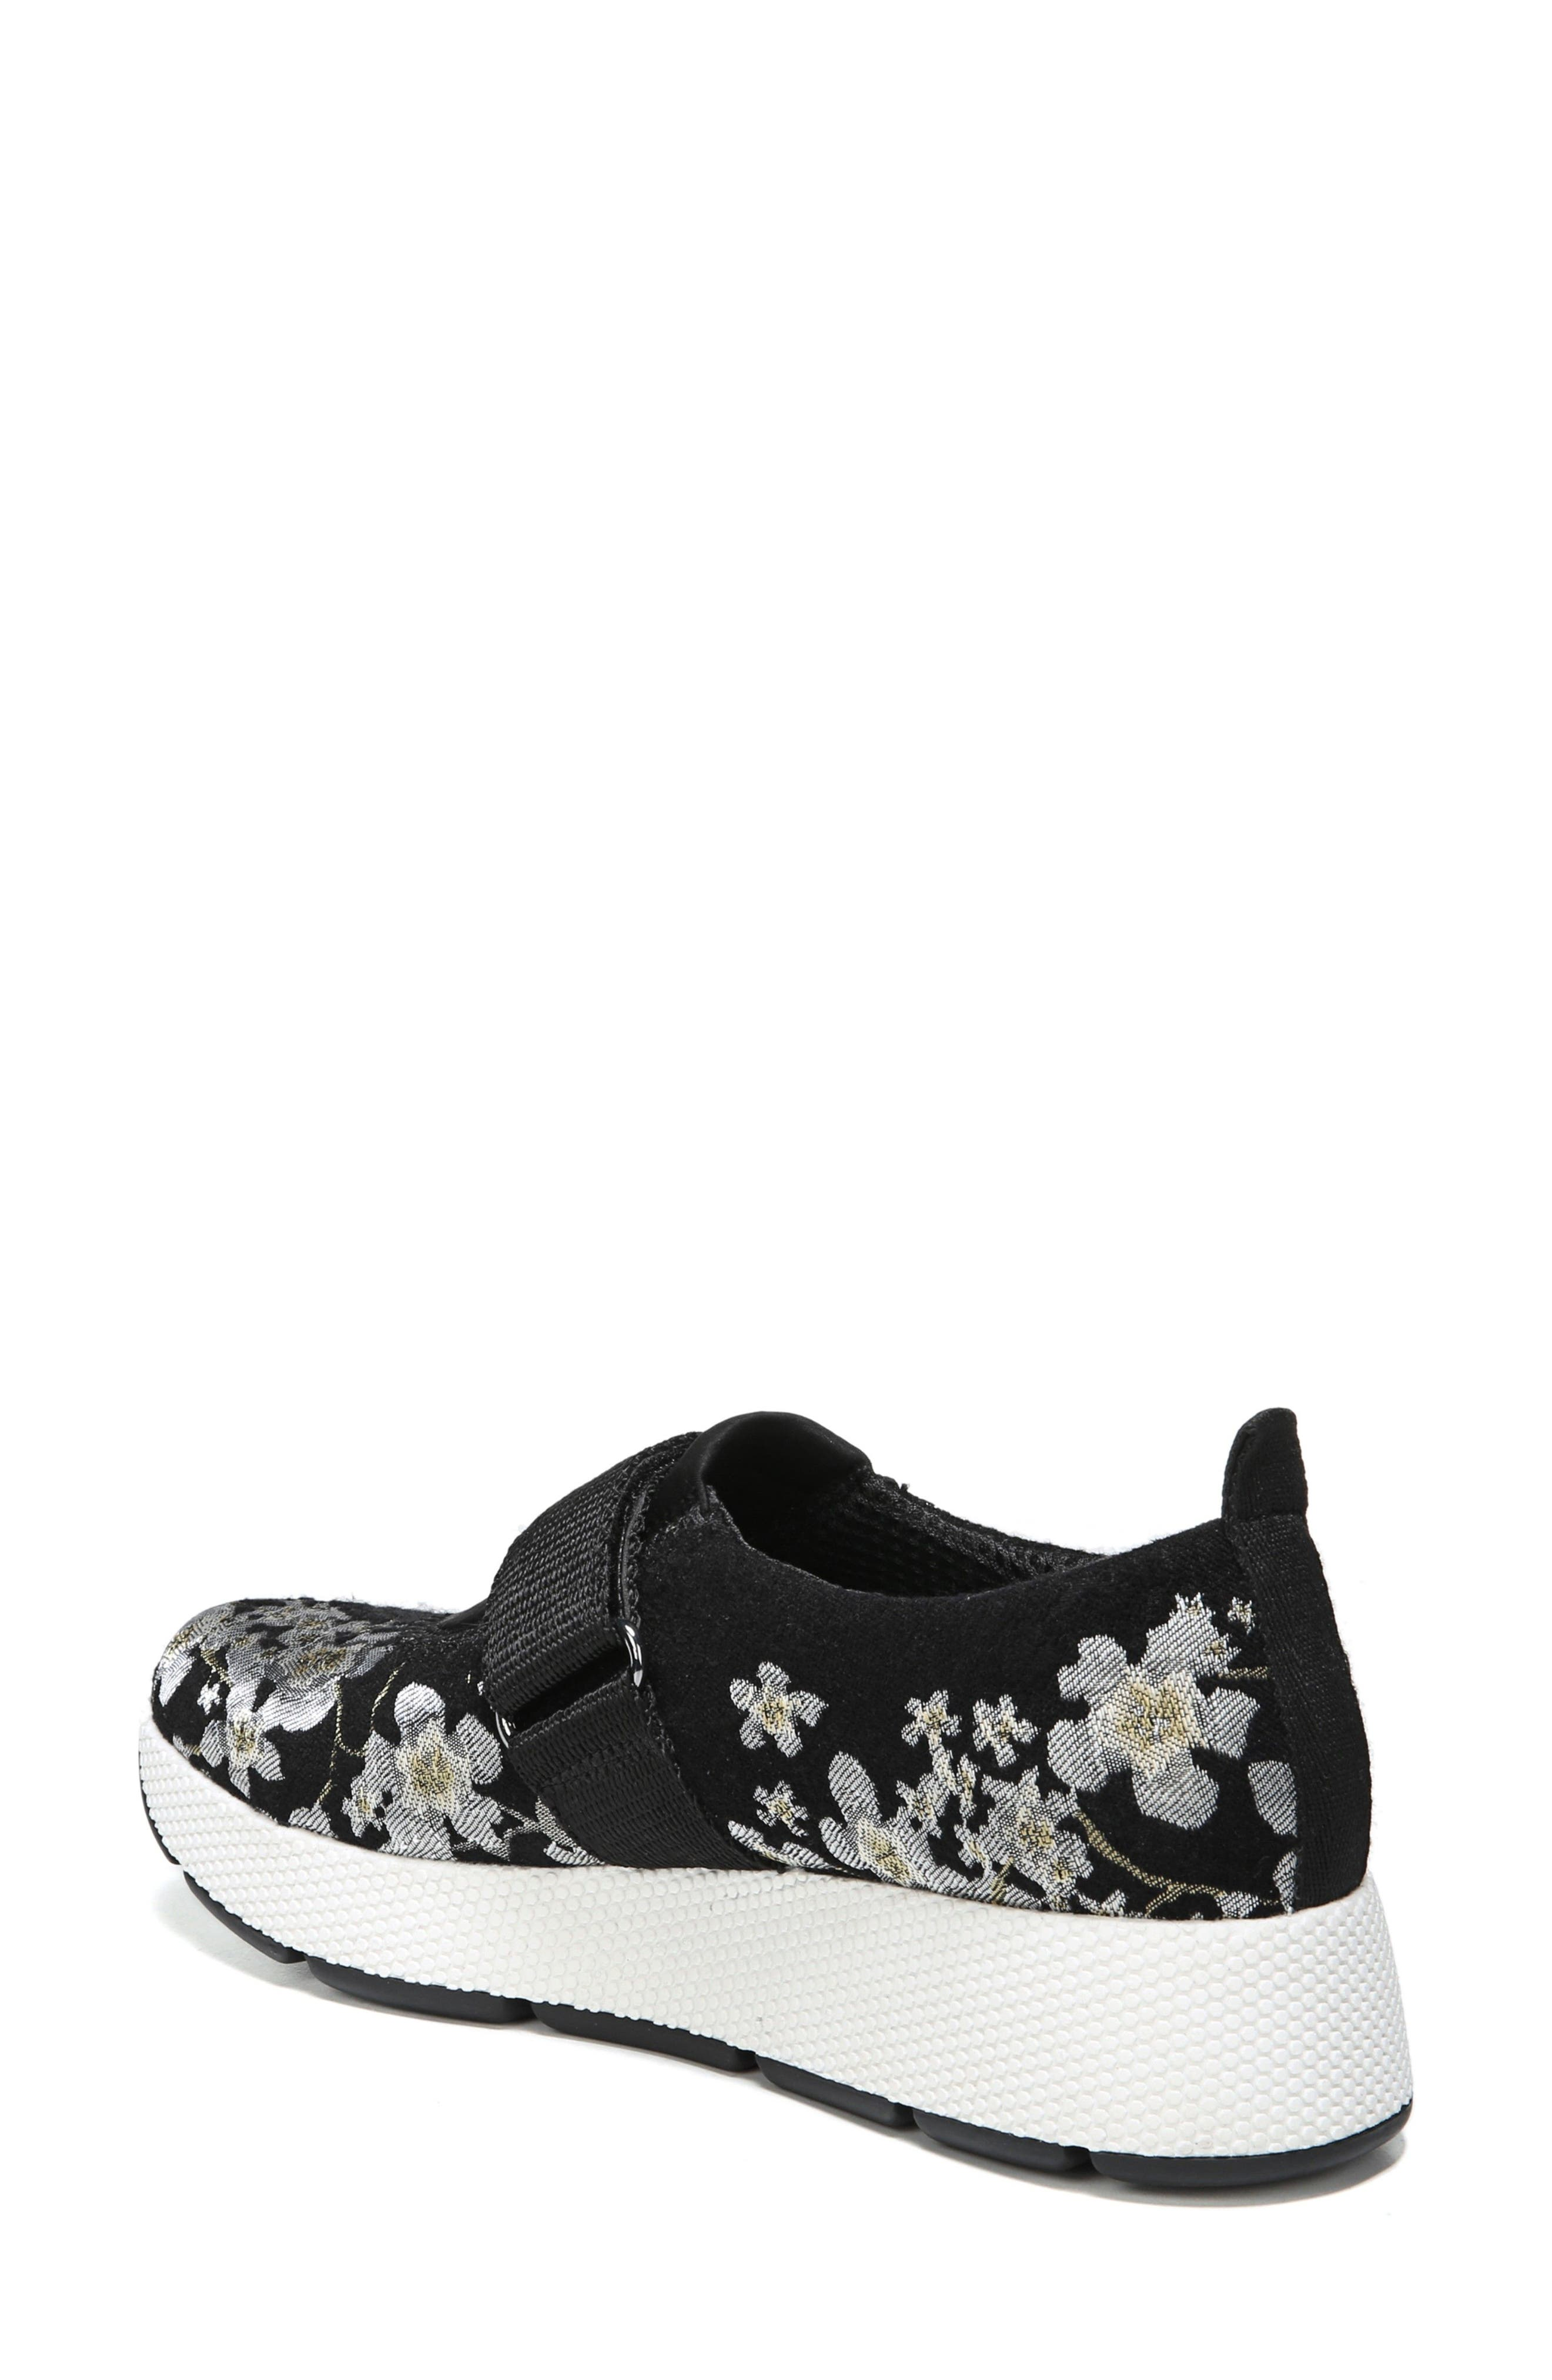 Odella Slip-On Sneaker,                             Alternate thumbnail 2, color,                             001